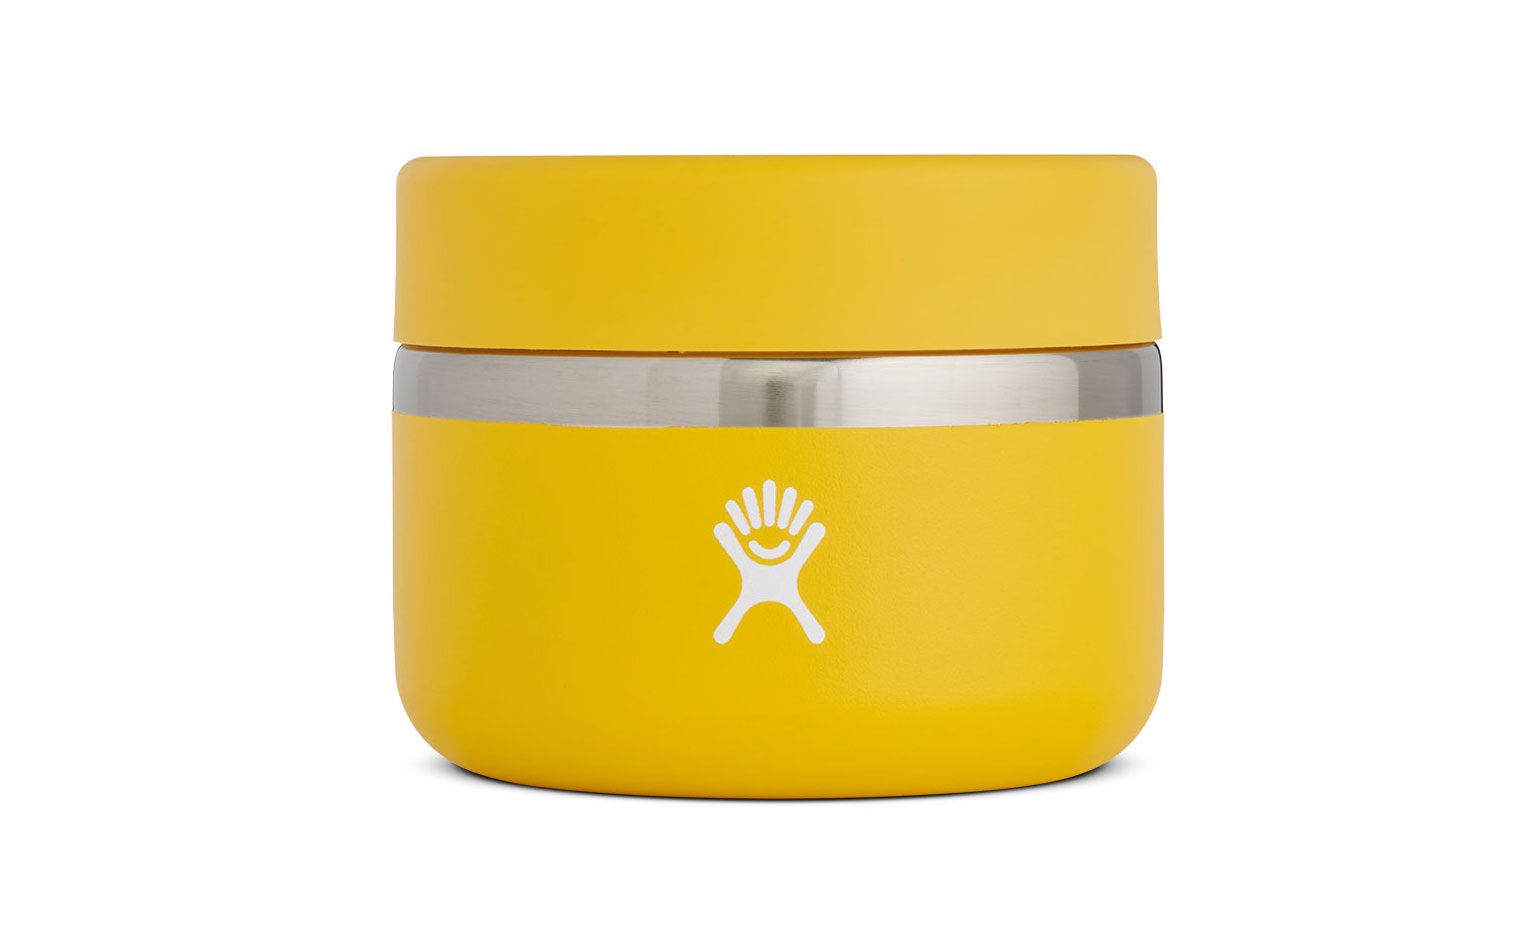 side view of yellow insulated container with lid